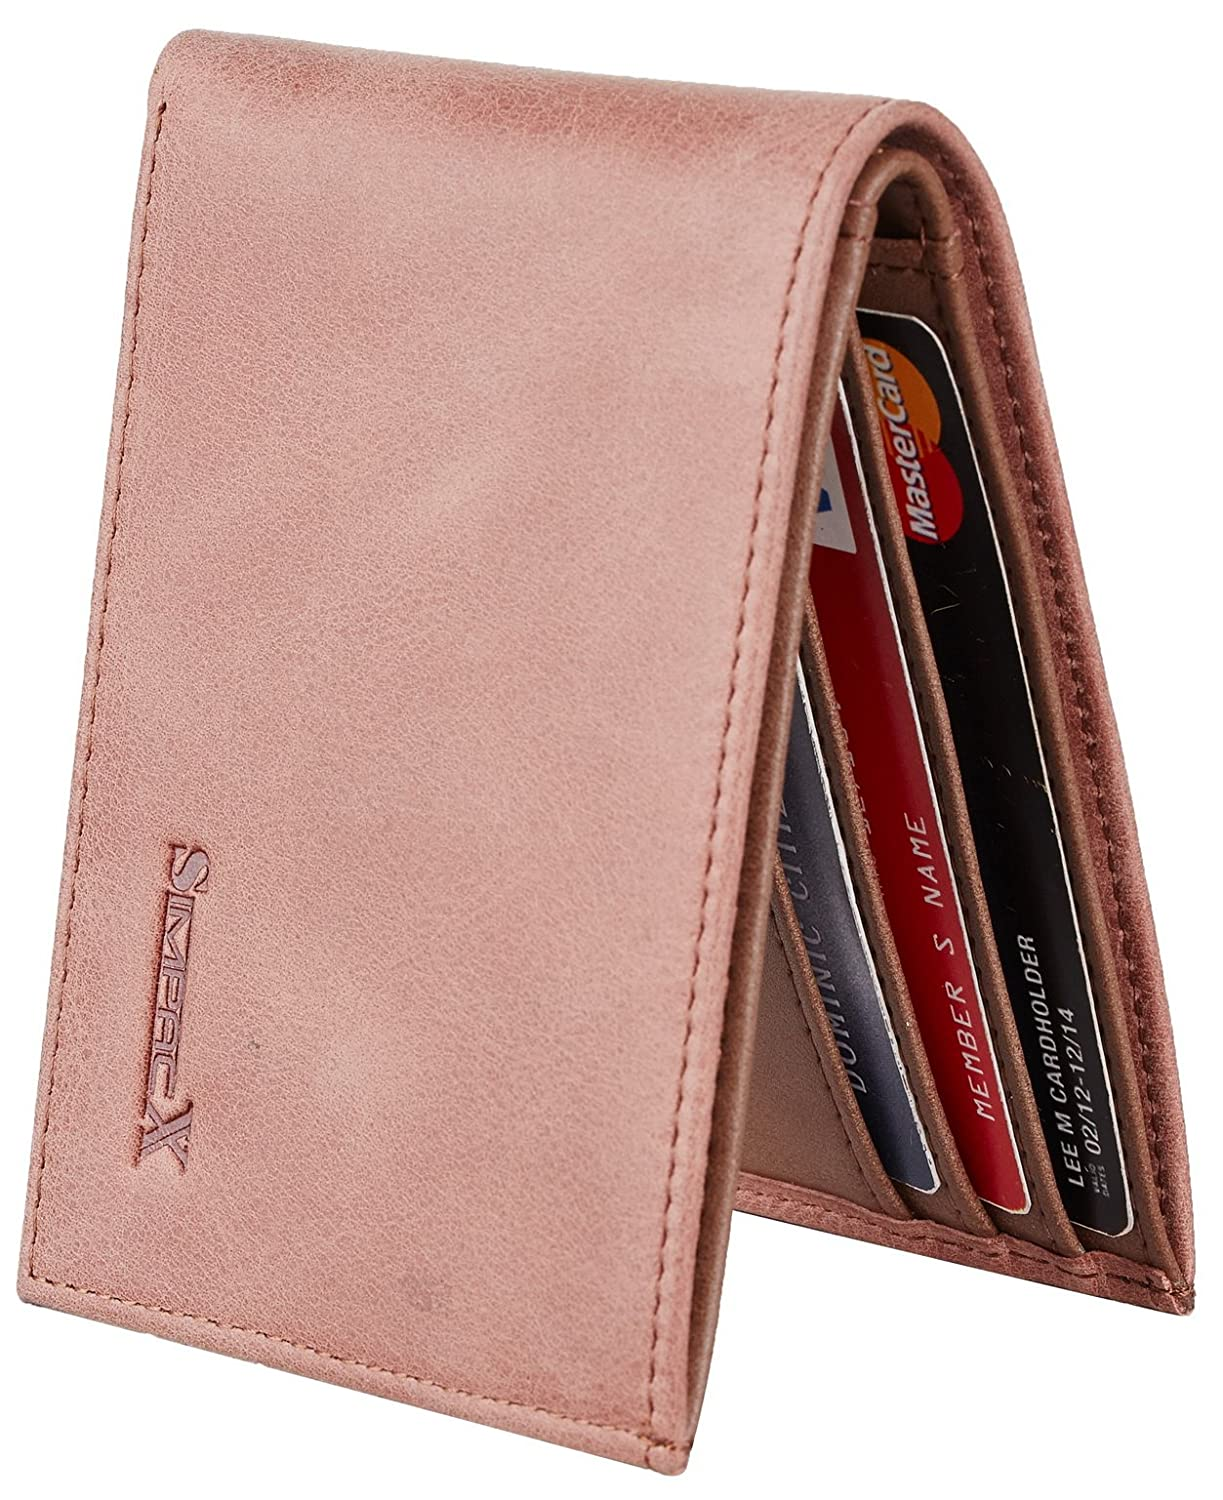 Chelmon Ultimate Slim Mini Wallet Front Pocket Minimalist Wallet Bifold Genuine Leather RFID Blocking tkc1301